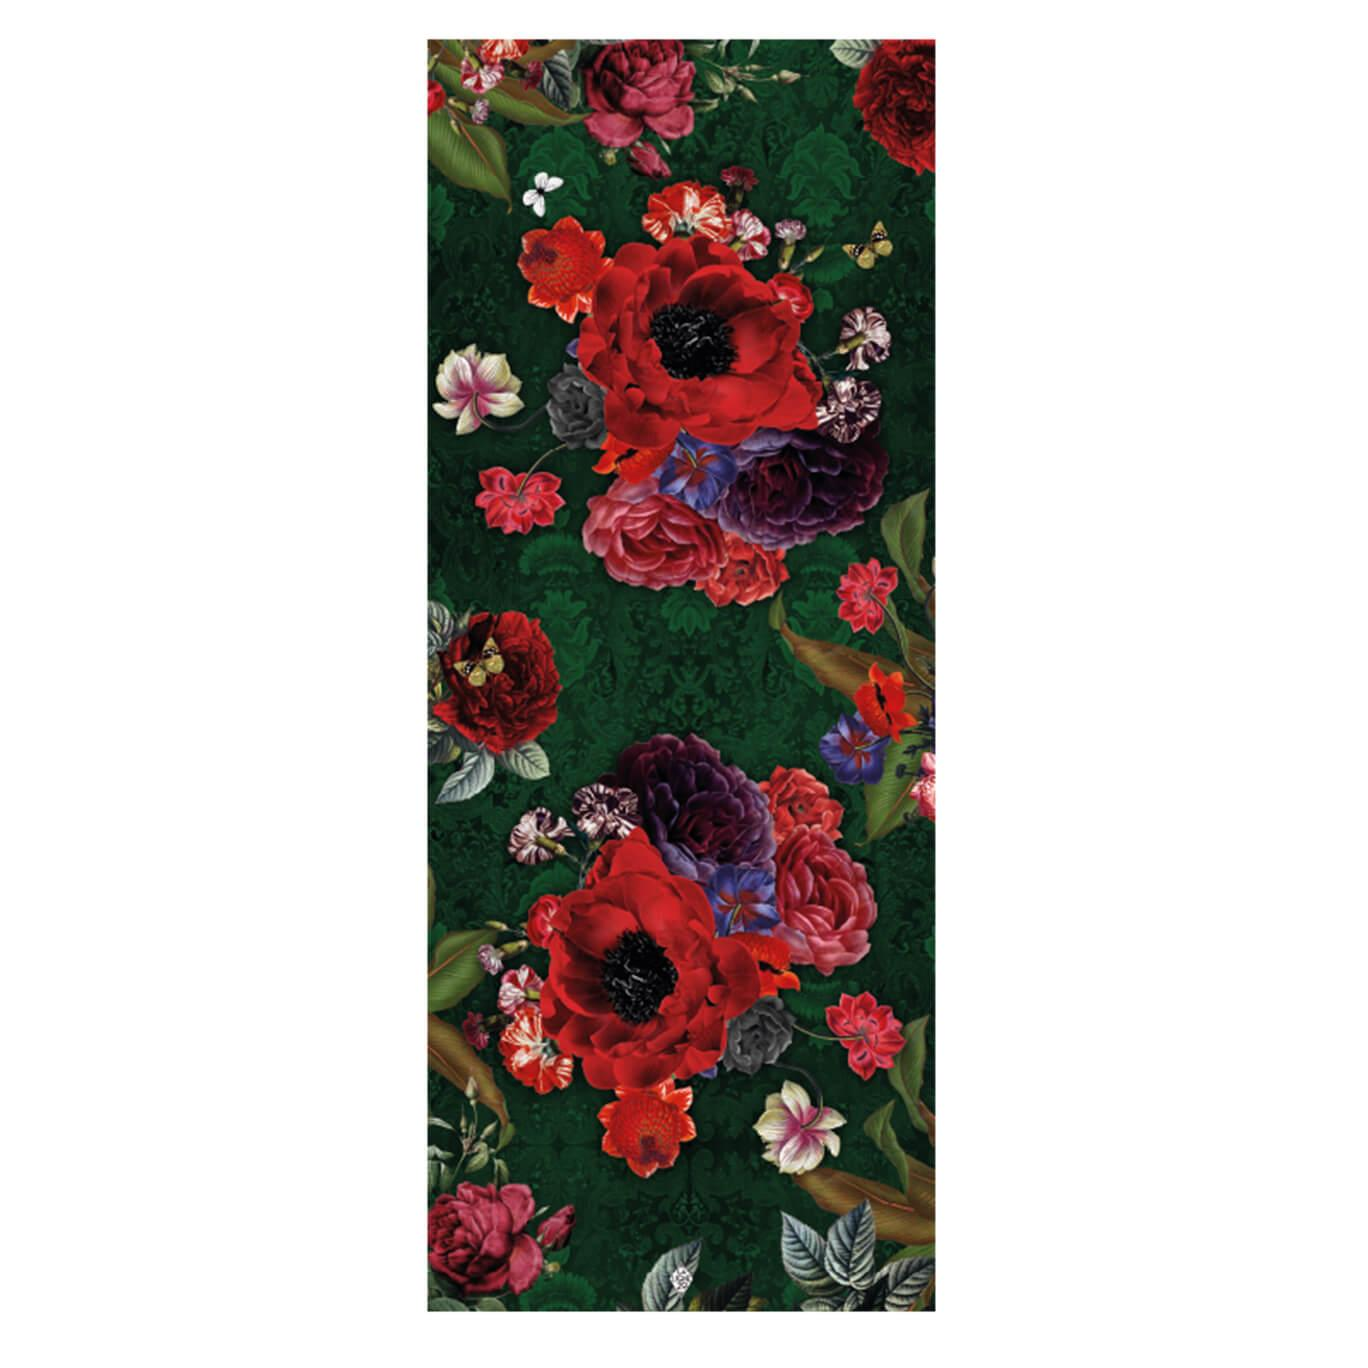 WALL COVER 100x250 cm